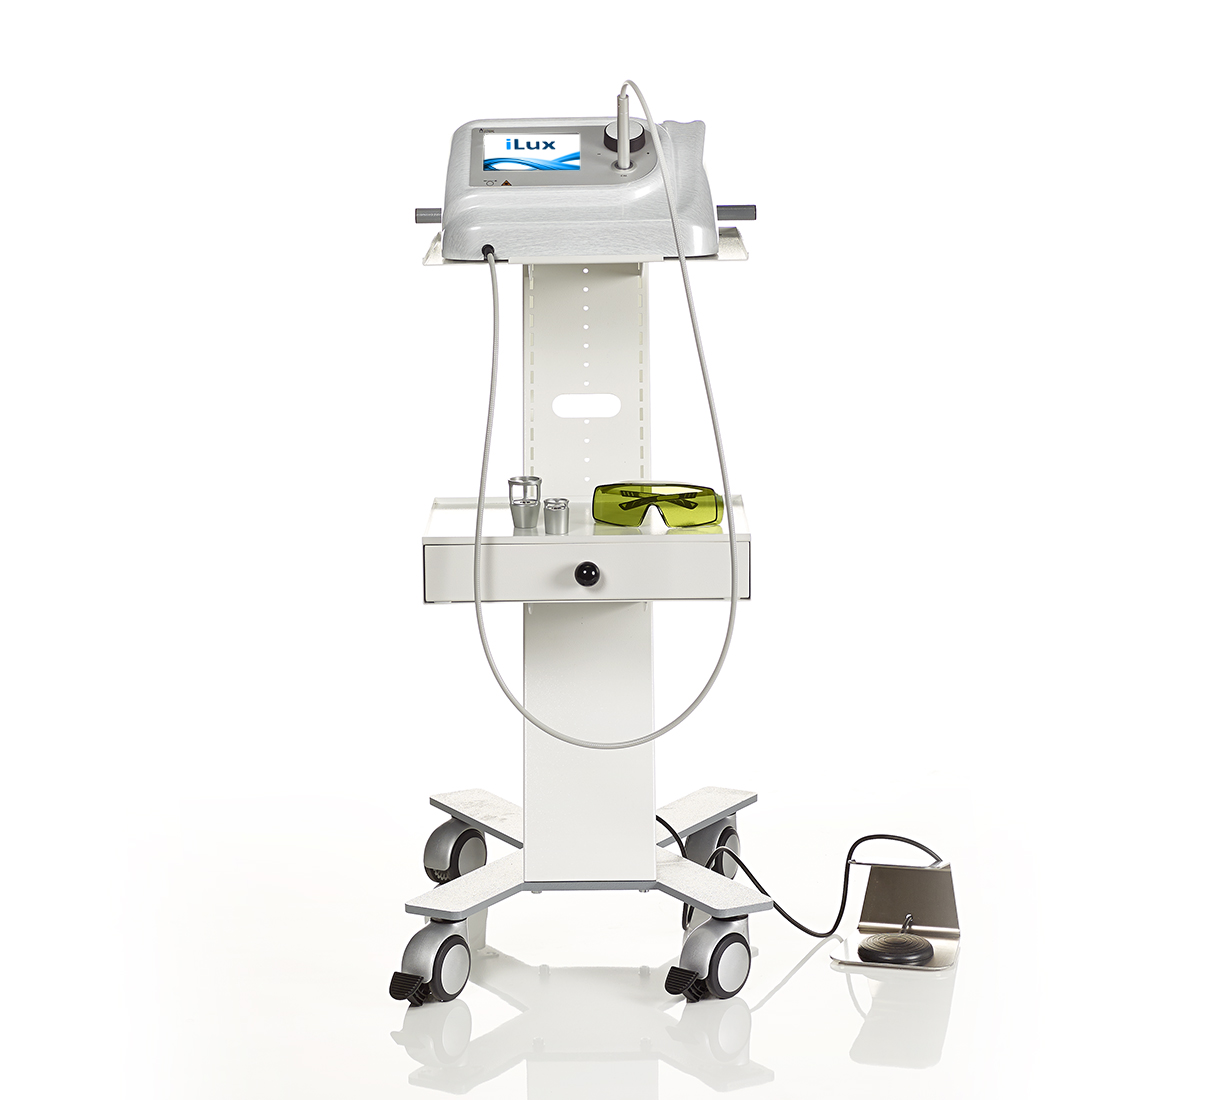 iLux laserterapia: the high tech laser